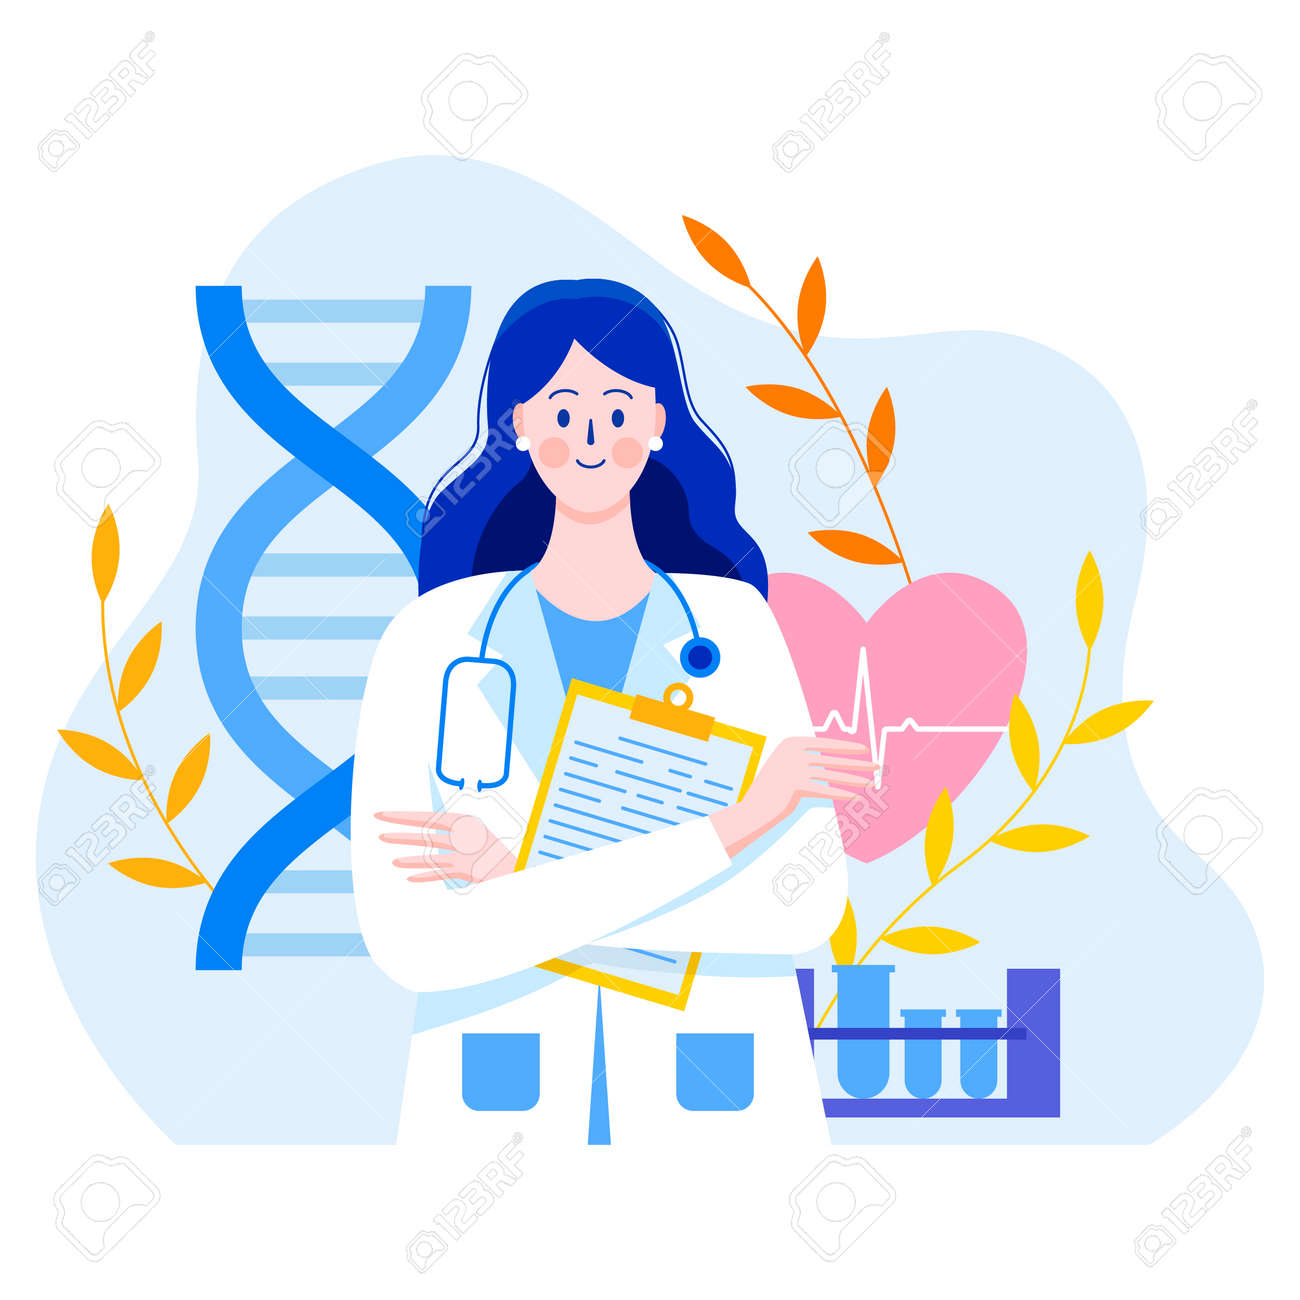 Medicine concept with a doctor in thin style. Practicing young doctor woman with documents. In the background are medical elements. Test tubes, heart, cardiogram, DNA, leaves. Consultations and diagnostics. - 152858153